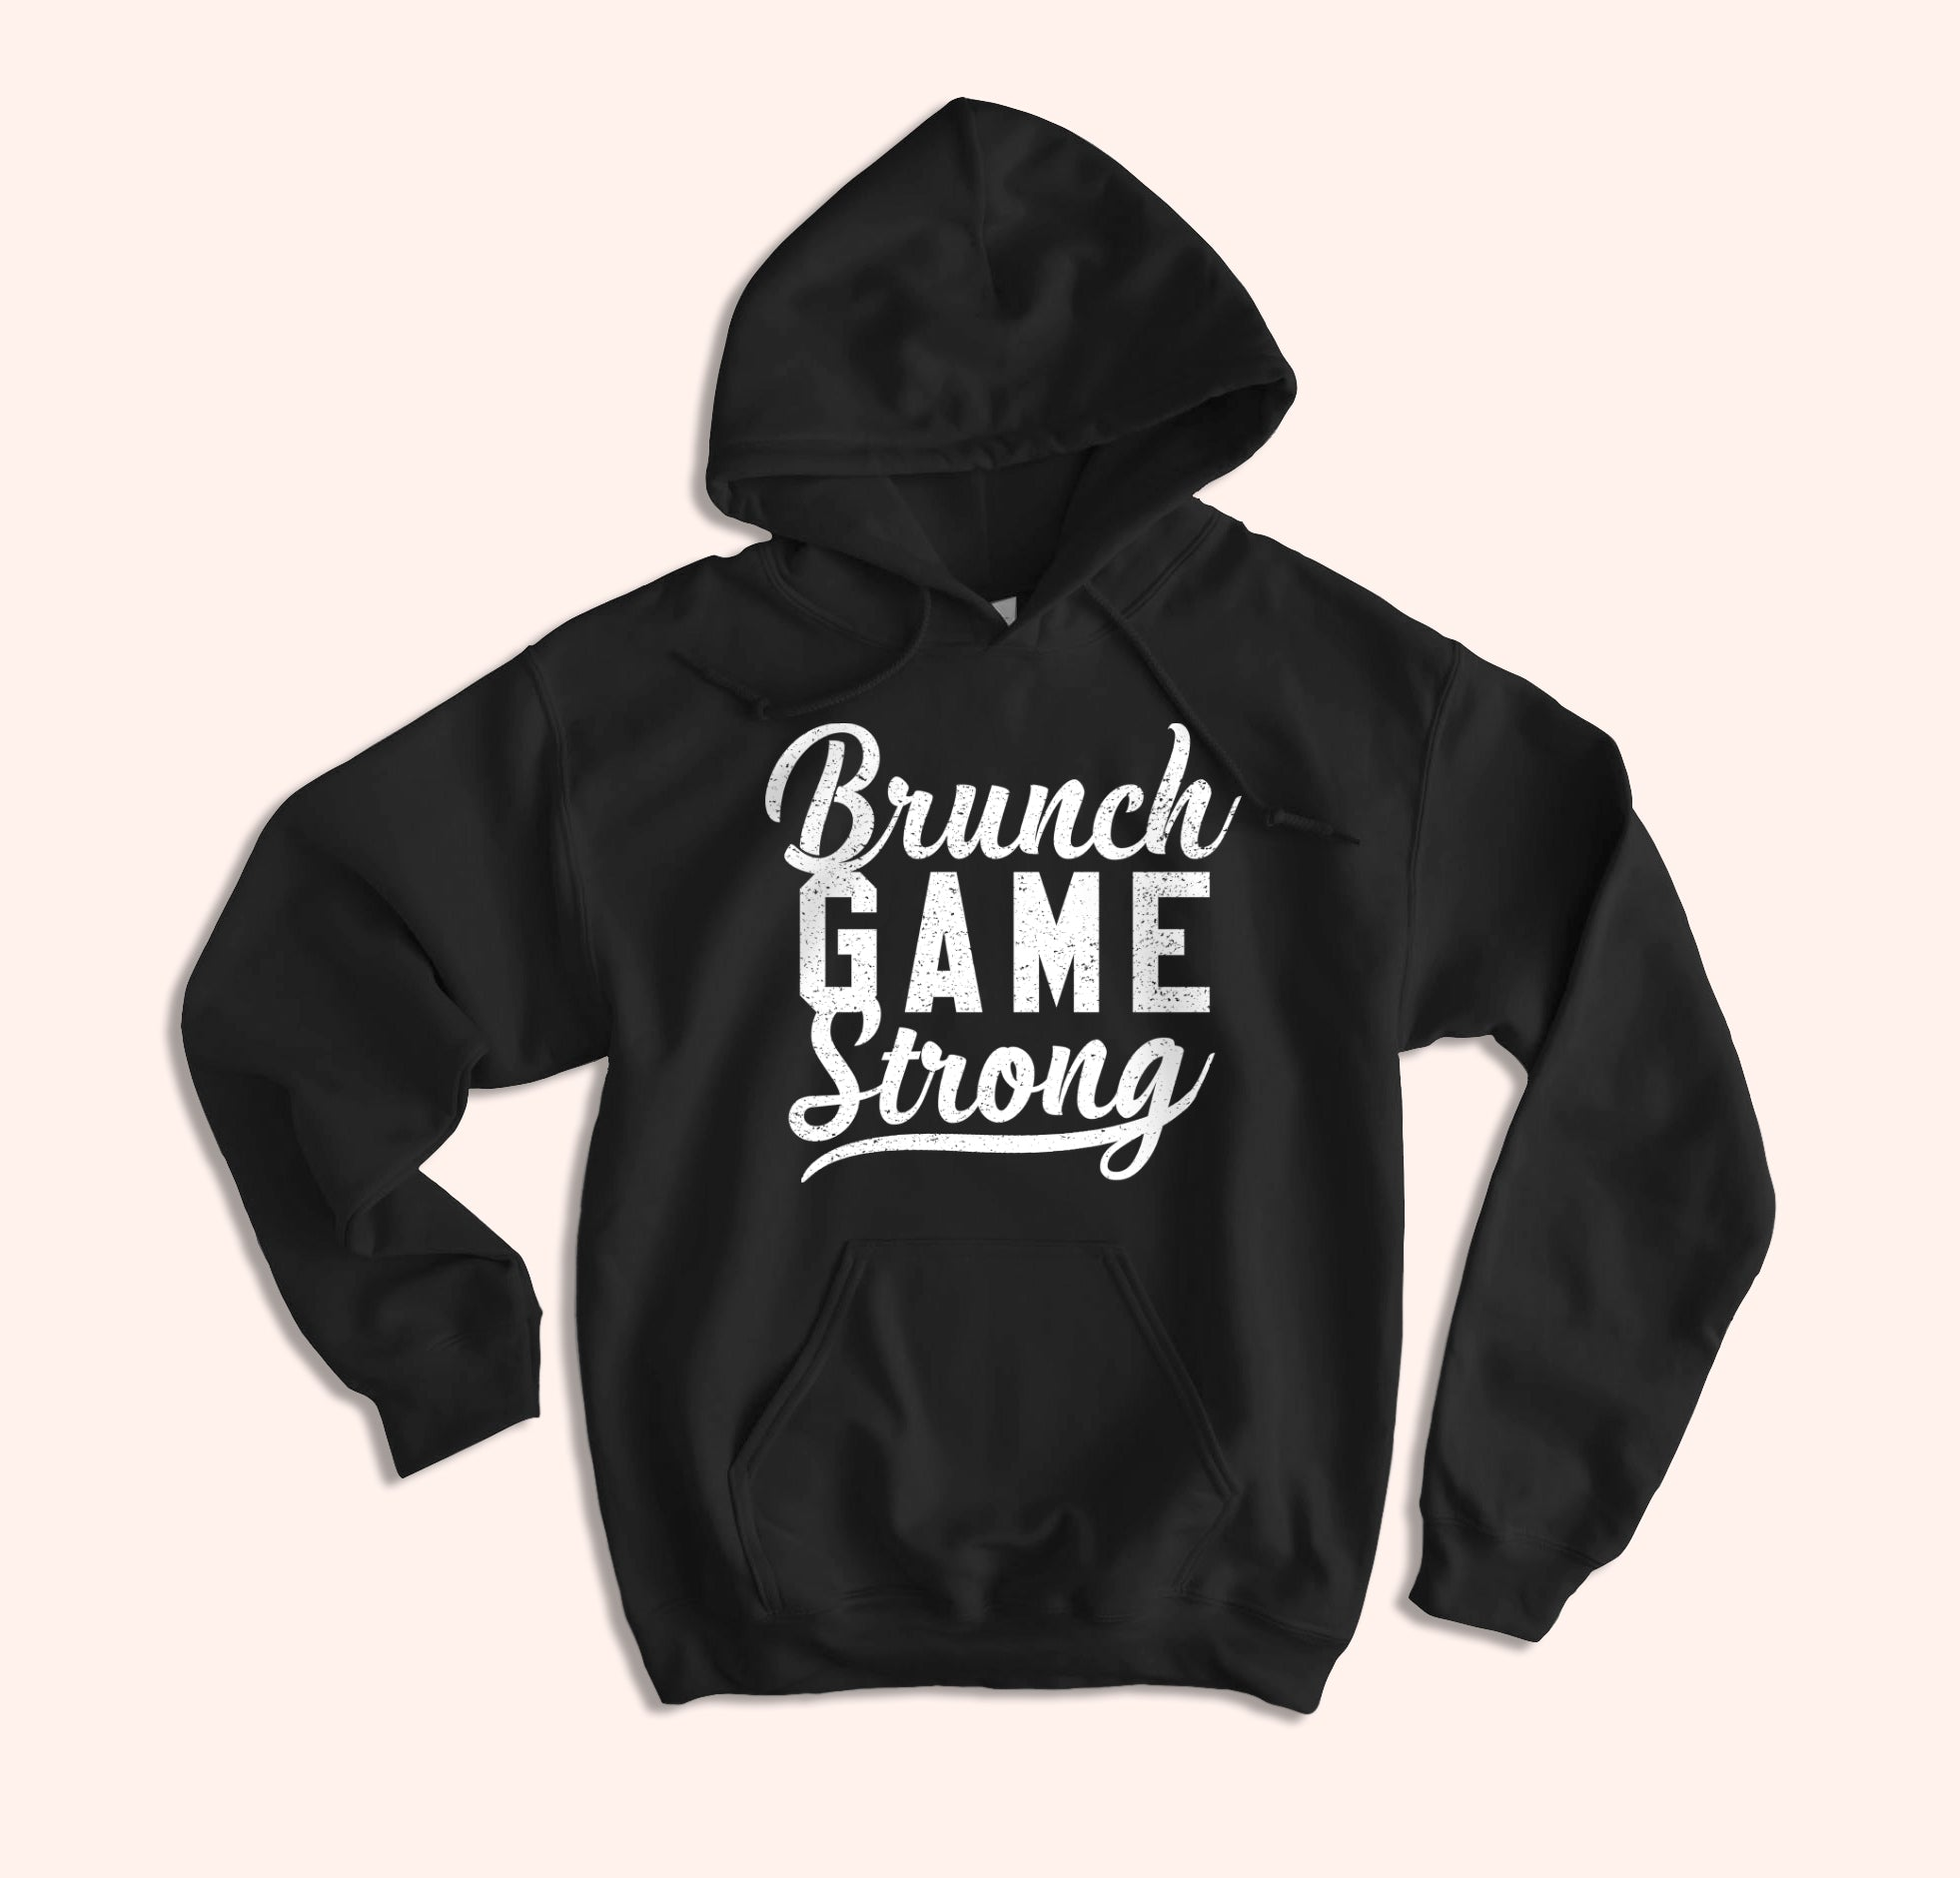 Brunch Game Strong Hoodie